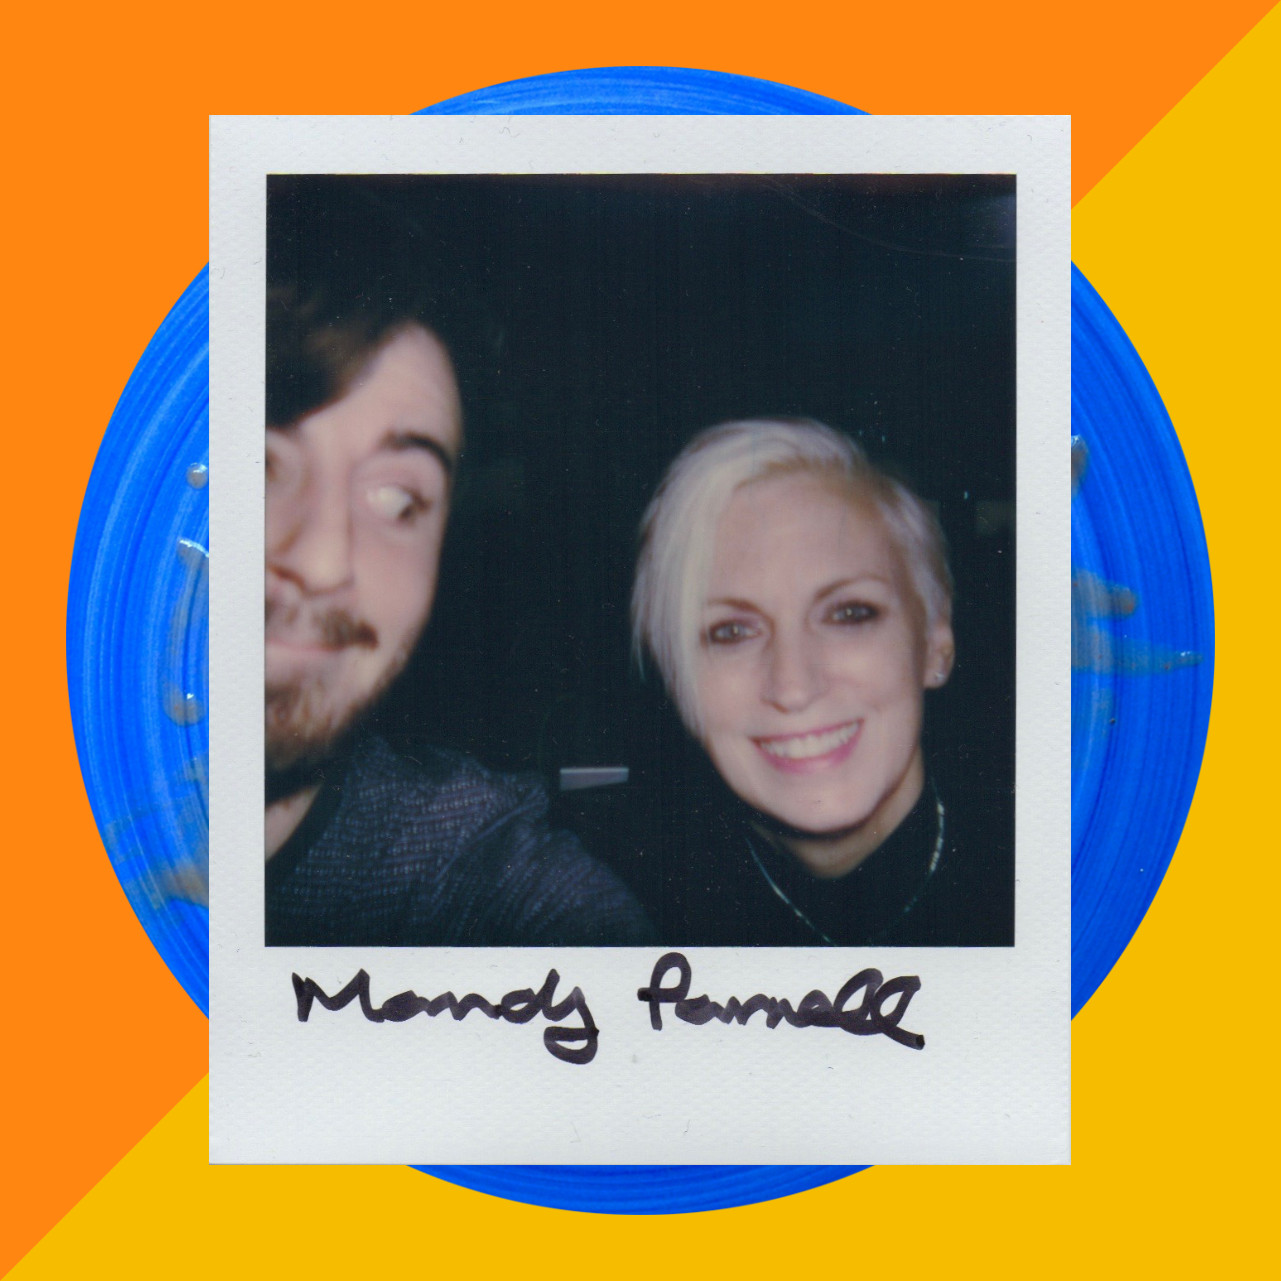 extra mess • Mandy Parnell